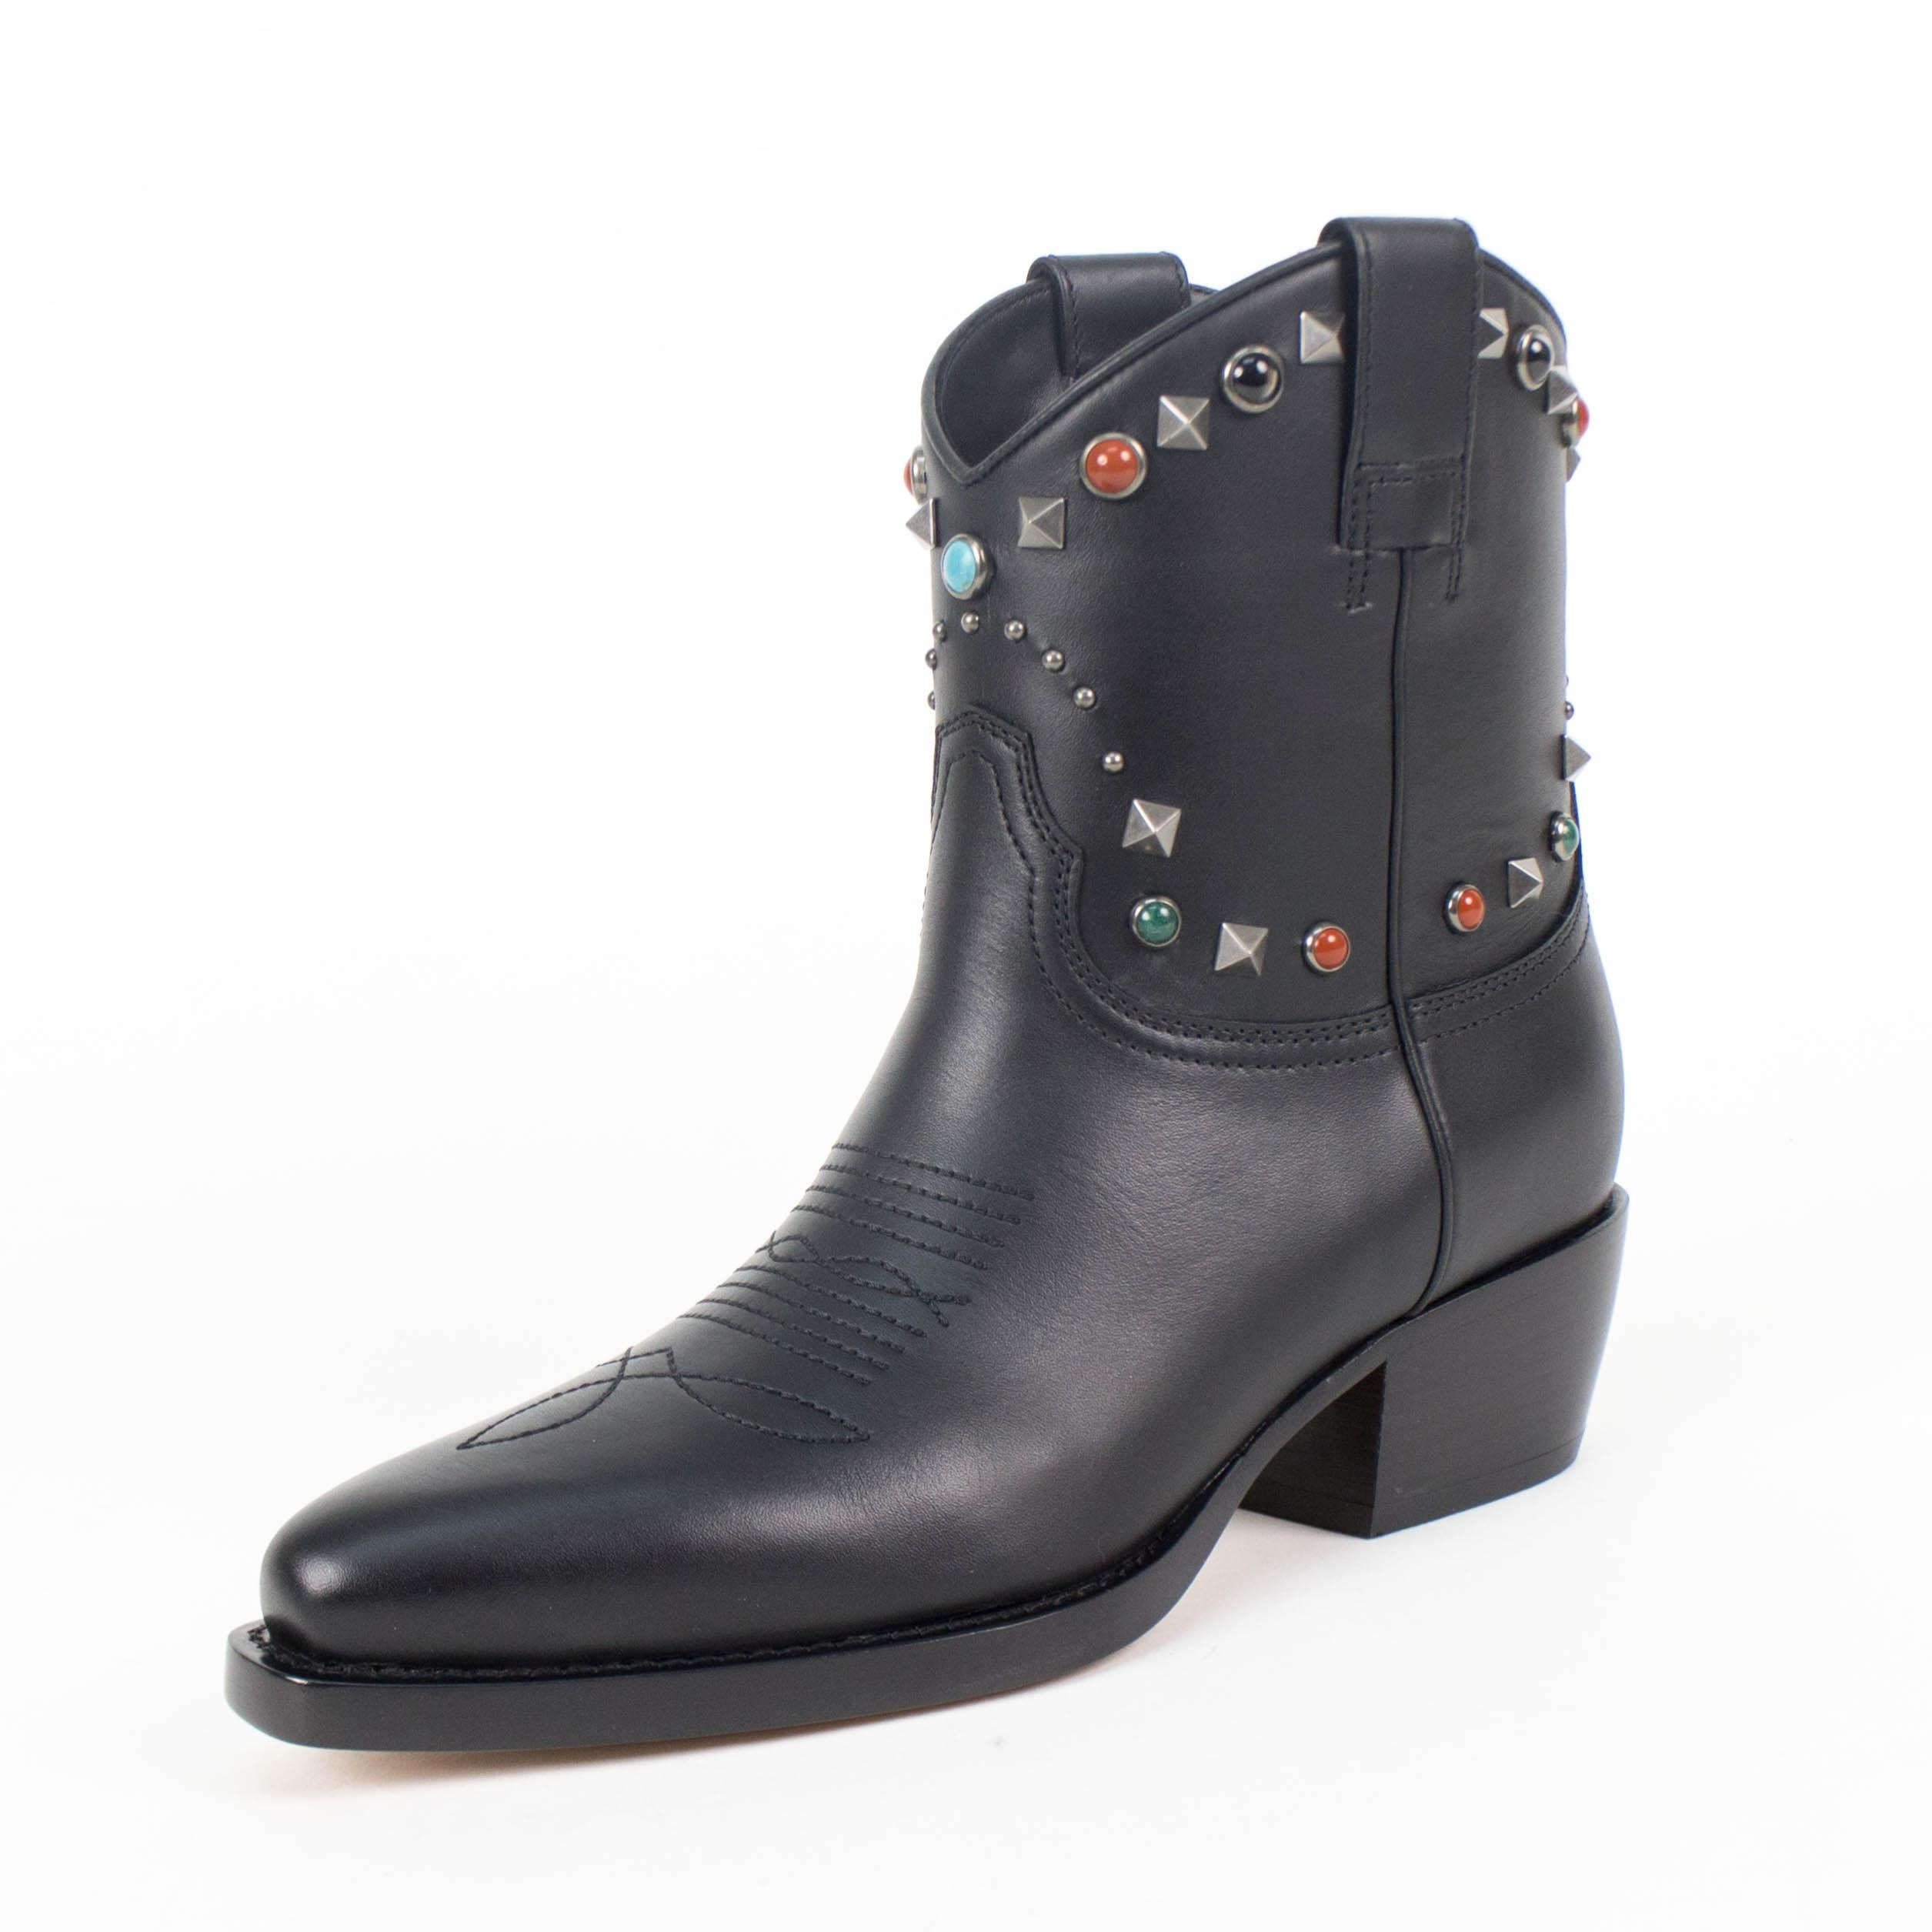 Valentino Woman Leather Cowboy Boots Black Size 39.5 Valentino VFqw7uy0D